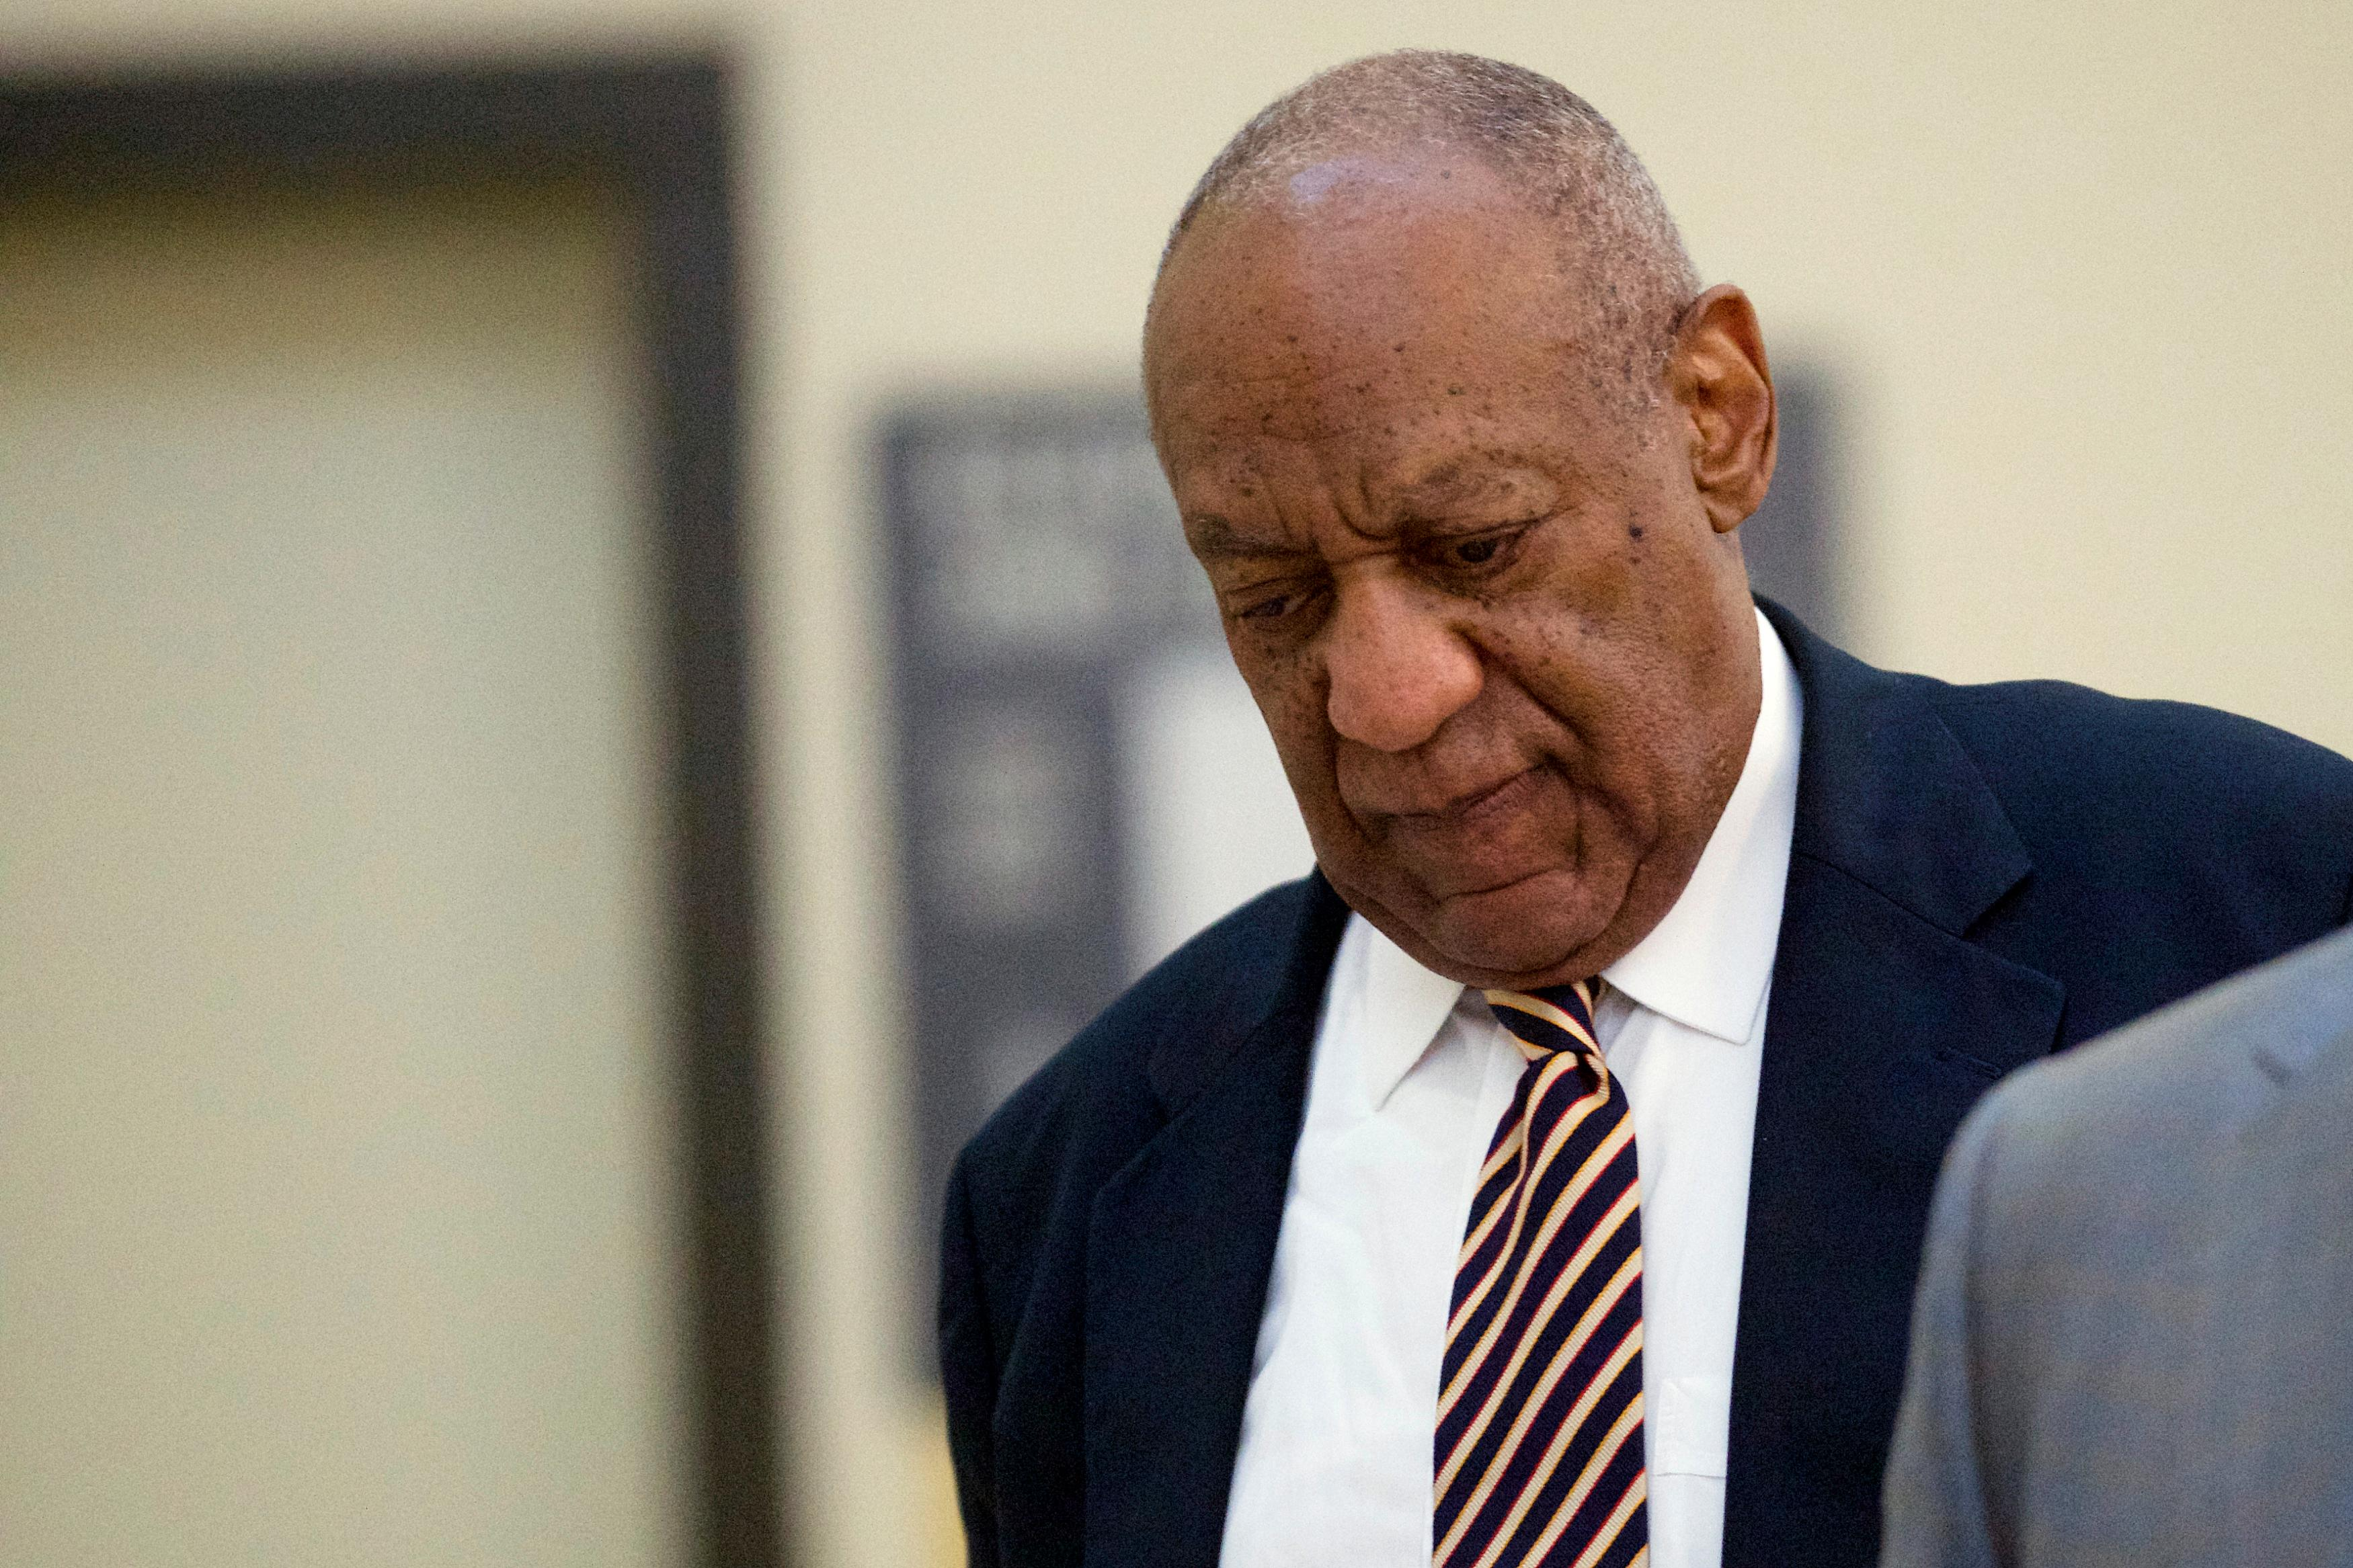 Bill Cosby walks through the Montgomery County Courthouse during jury deliberations in his sexual assault trial in Norristown, Pa., Wednesday, June 14, 2017. (Mark Makela/Pool Photo via AP)